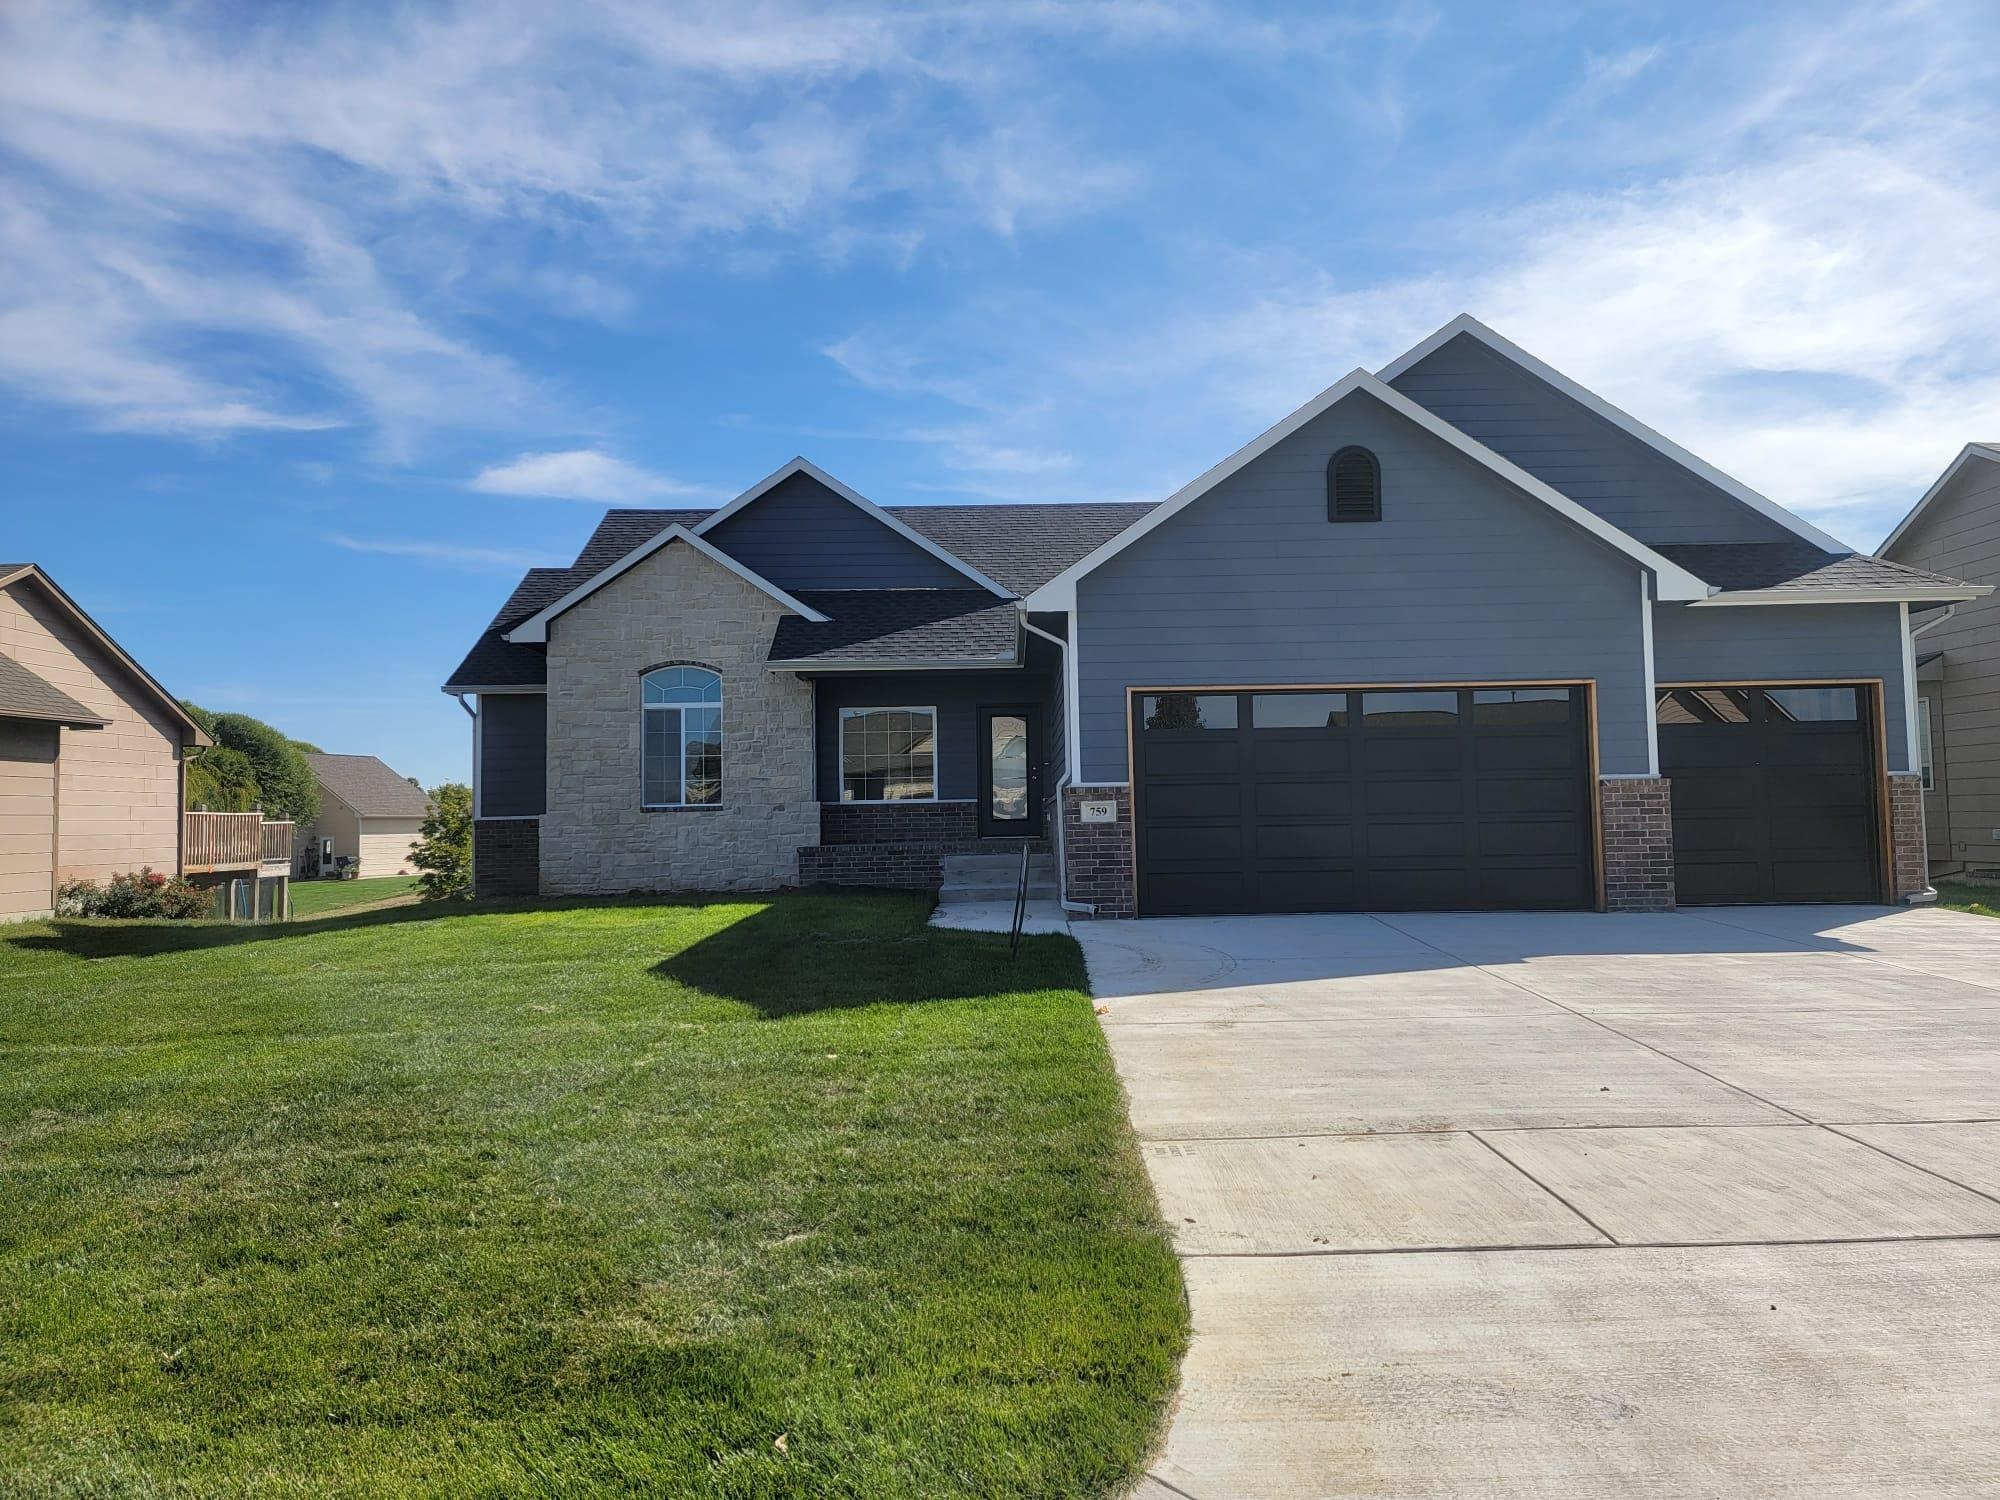 07/30/2021* Trim Stage* Custom beautiful home, 3000 square feet with 5 bedrooms 3 bathrooms 3 car at